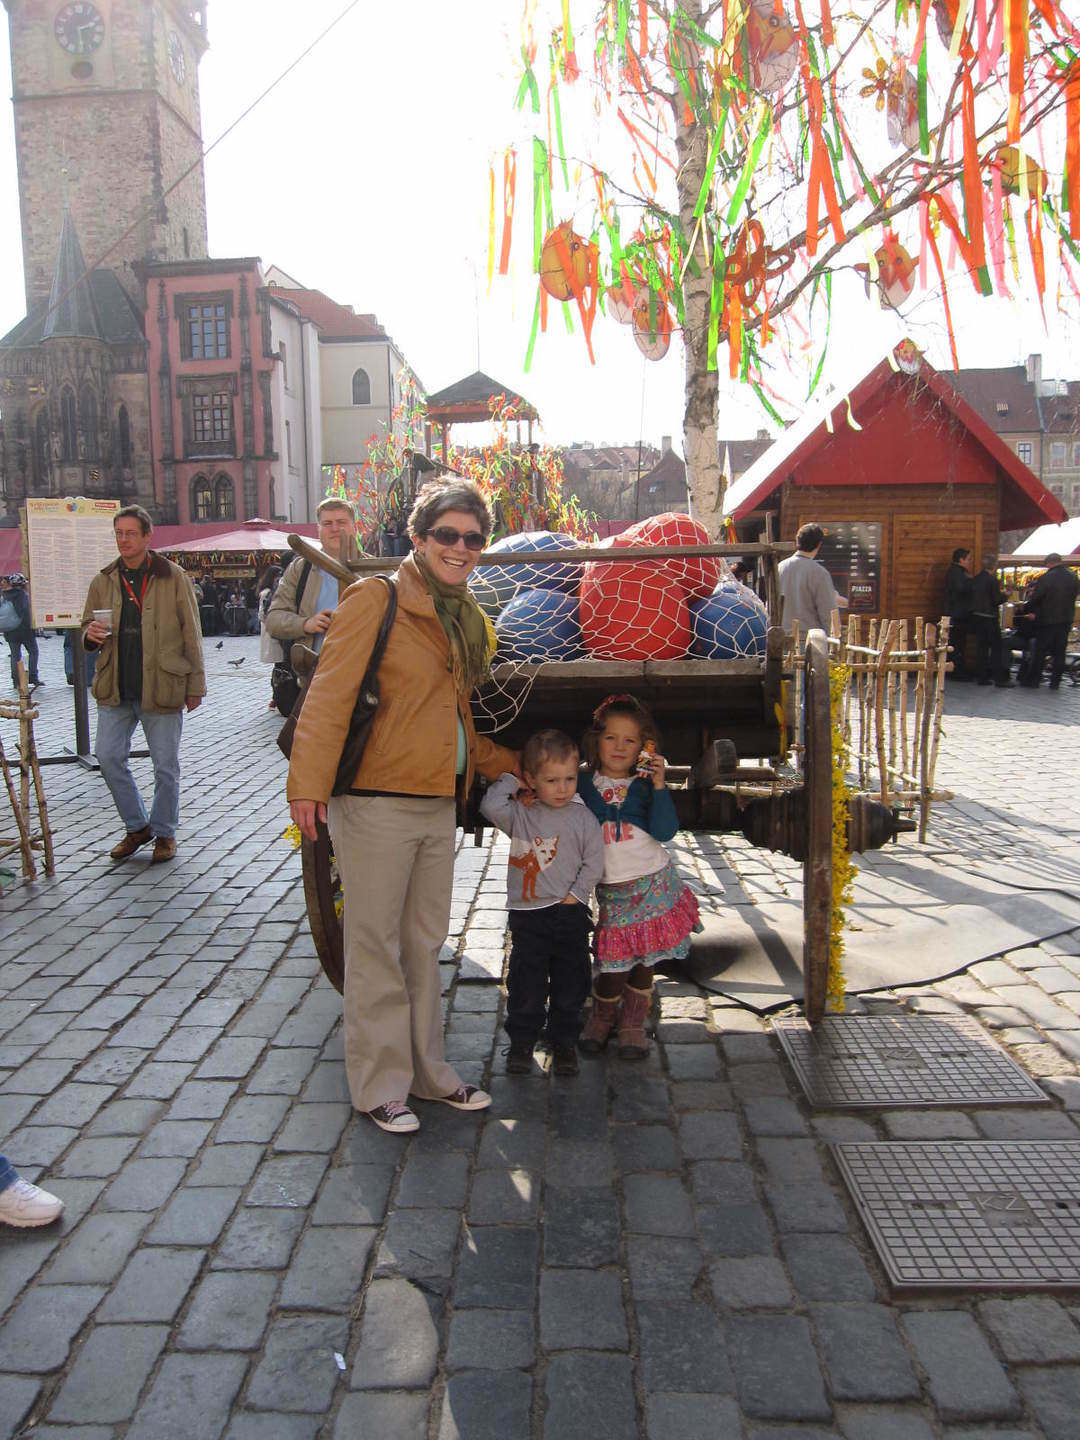 Emily, Anna & Oliver at Old Town Square in front of giant Easter eggs & pomlazky (whips)